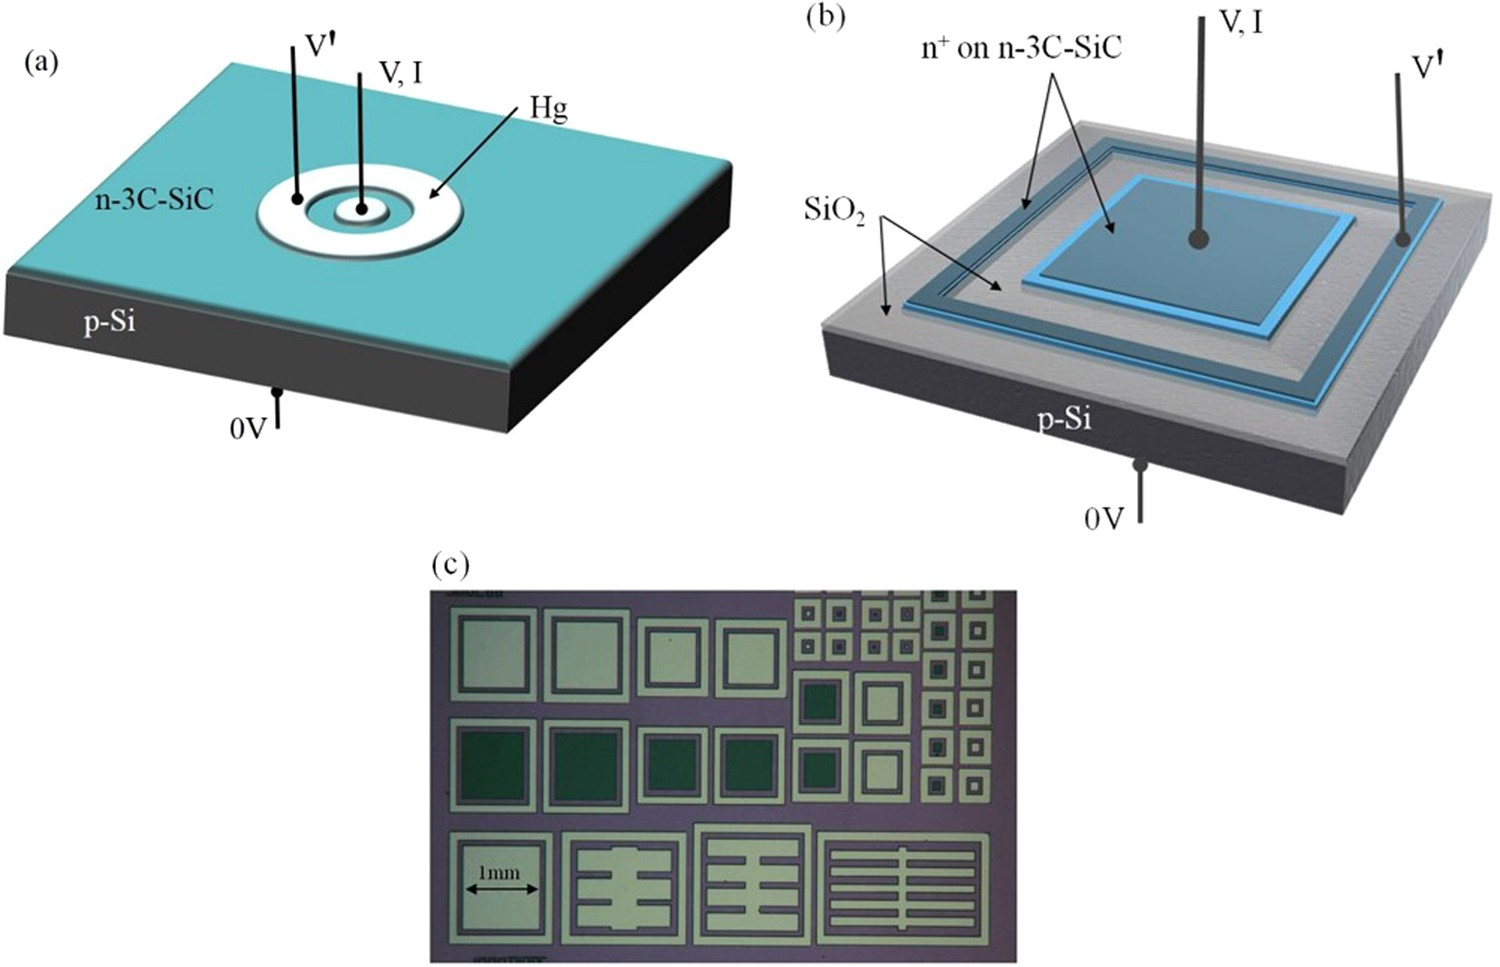 Excellent Rectifying Properties Of The N 3c Sic P Si Heterojunction Schottky Diodes Vs Silicon Rectifiers Eeweb Power Subjected To High Temperature Annealing For Electronics Mems And Led Applications